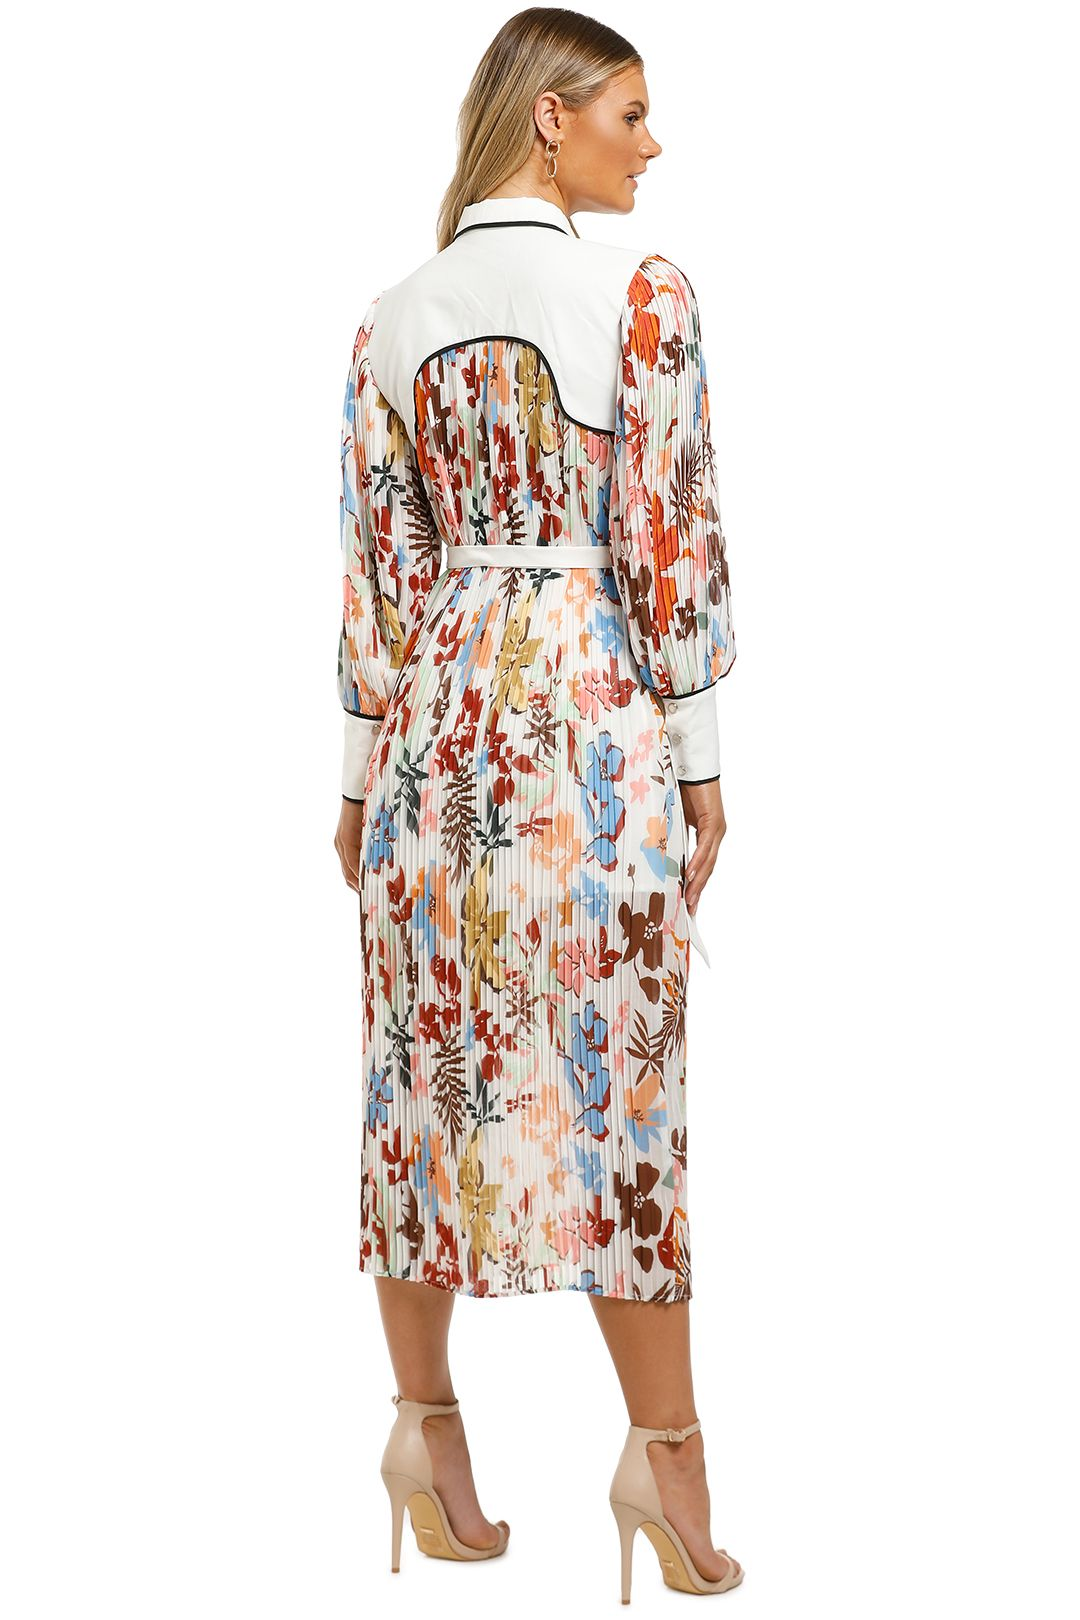 CMEO-Collective-With-Or-Without-Dress-Ivory-Abstract-Floral-Back